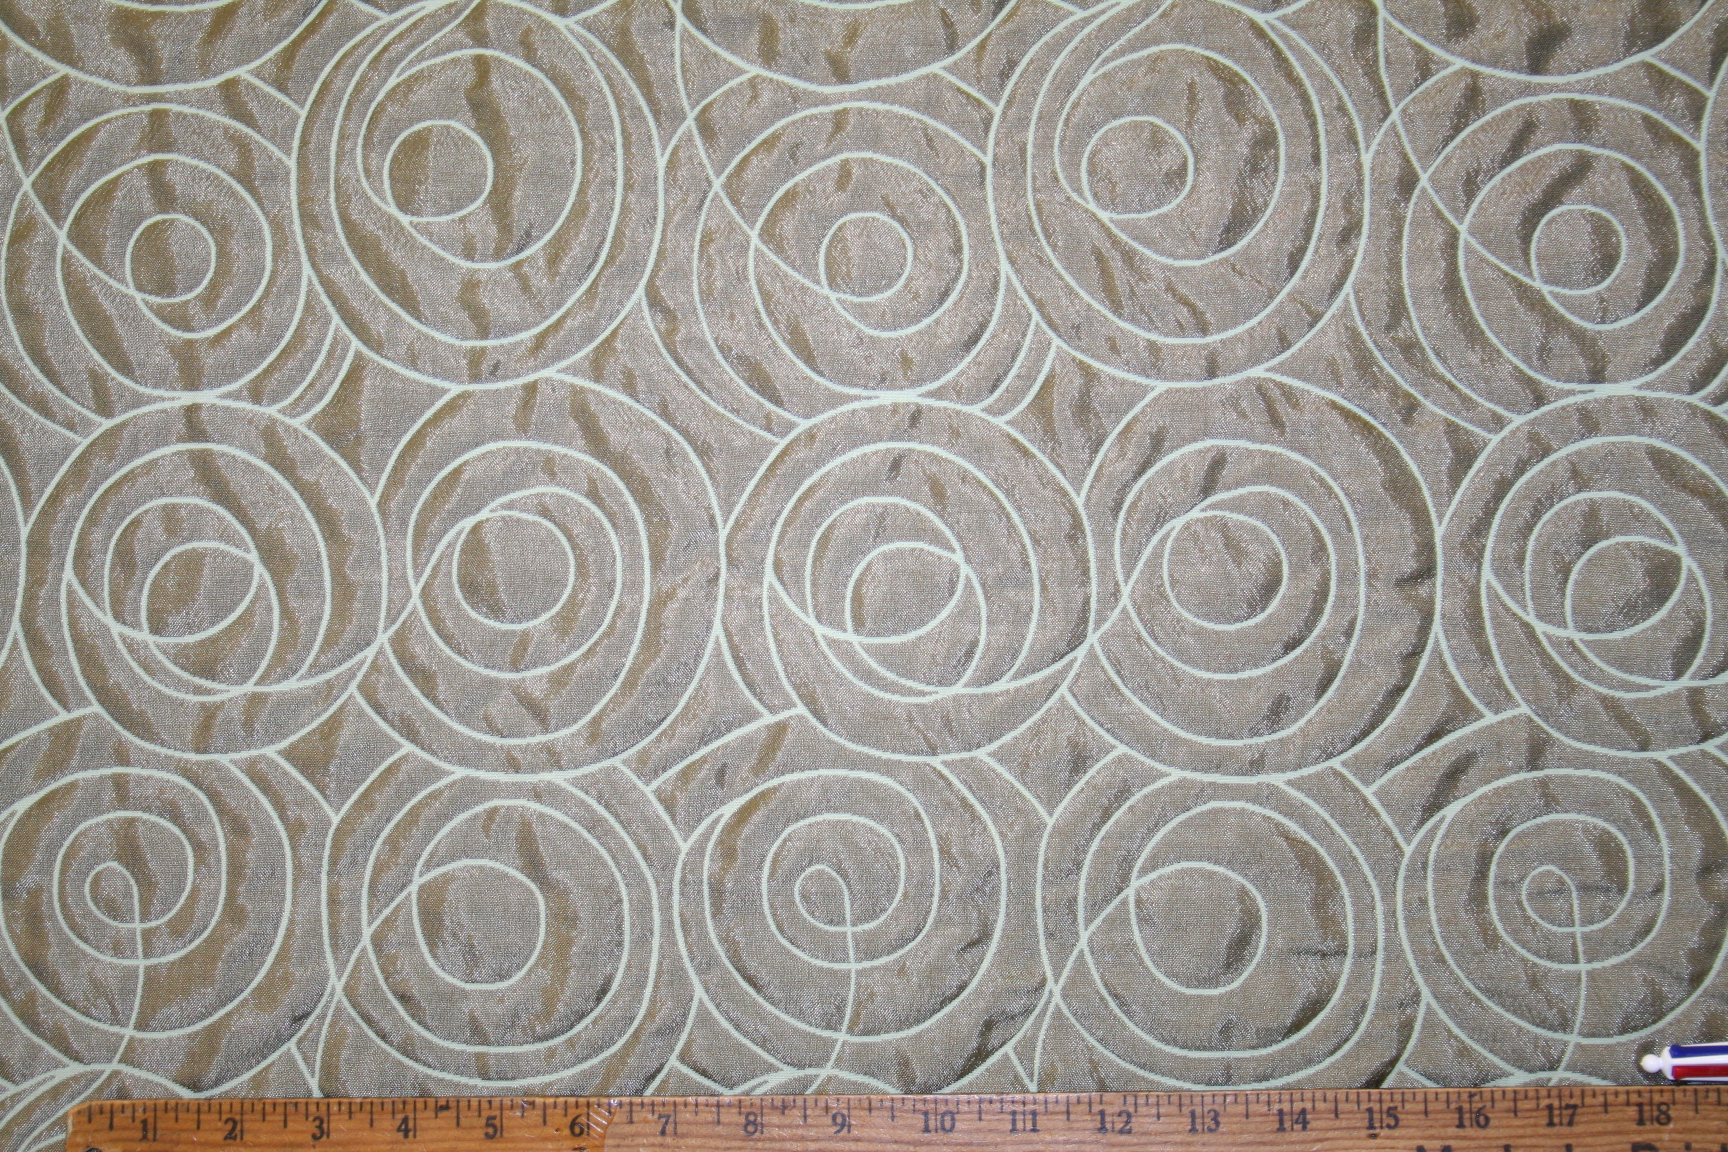 Robert allen fabrics time loop storm upholstery discount Discount designer home decor